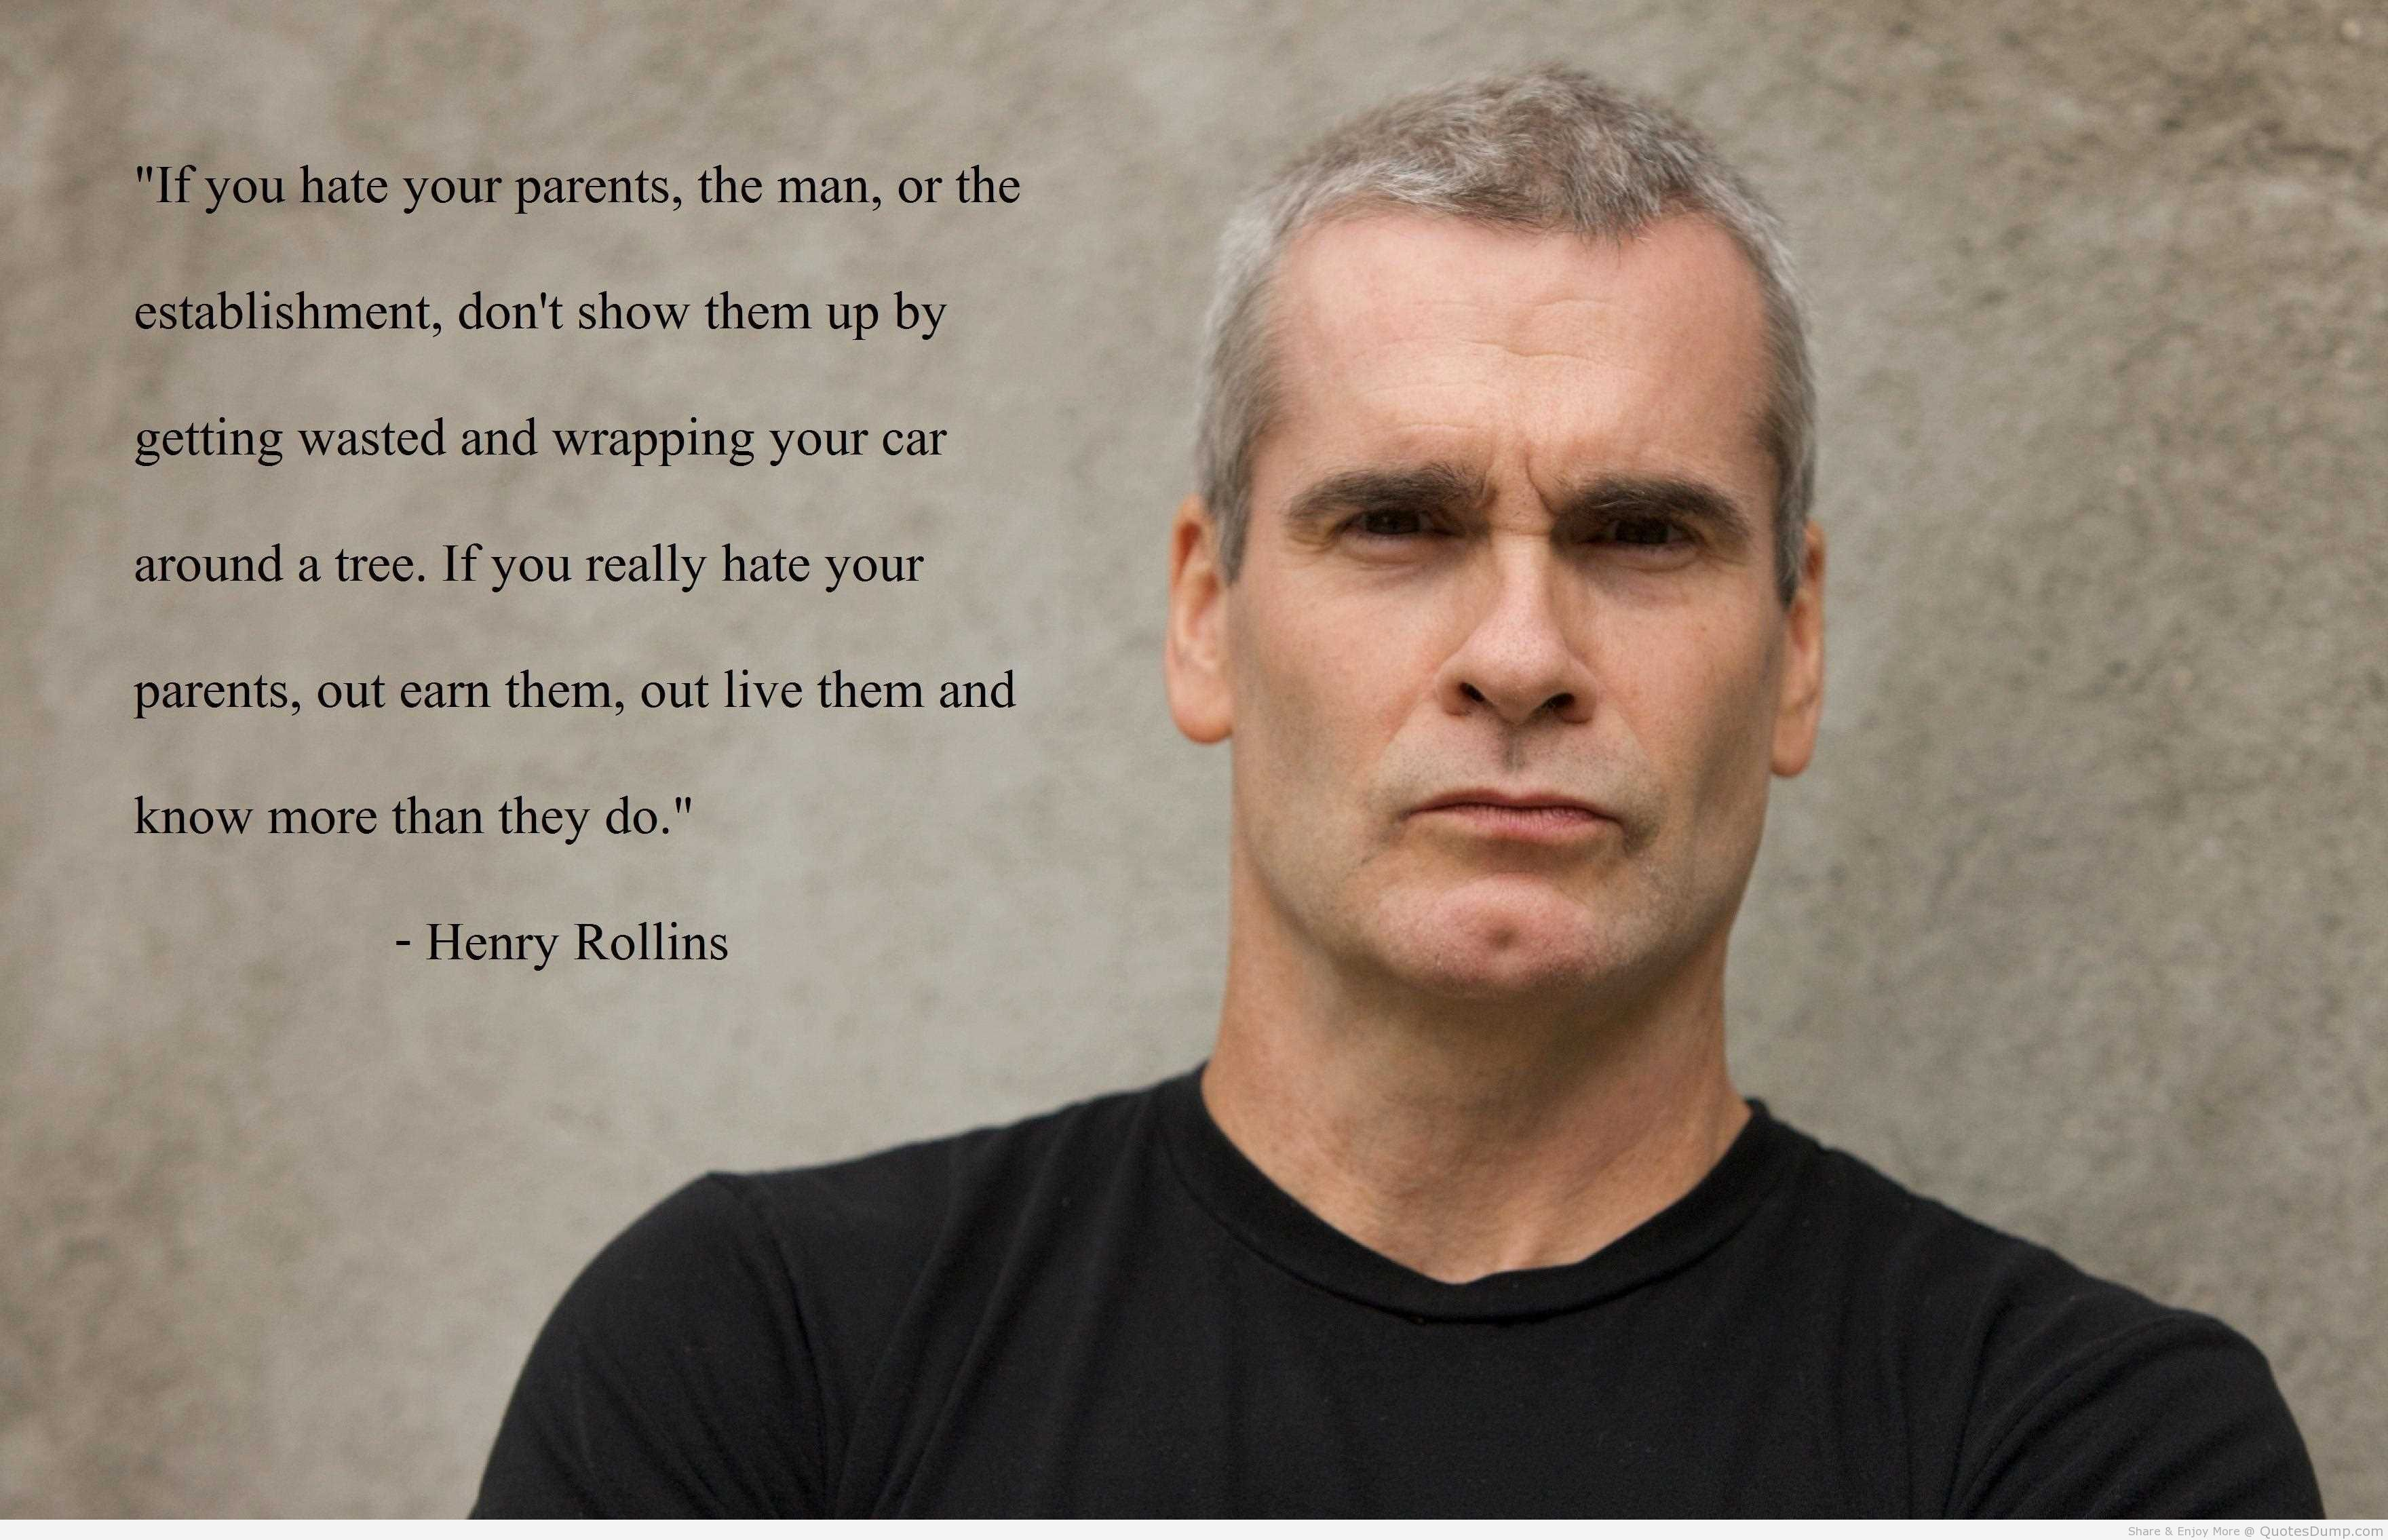 henry rollins tattoo meaning